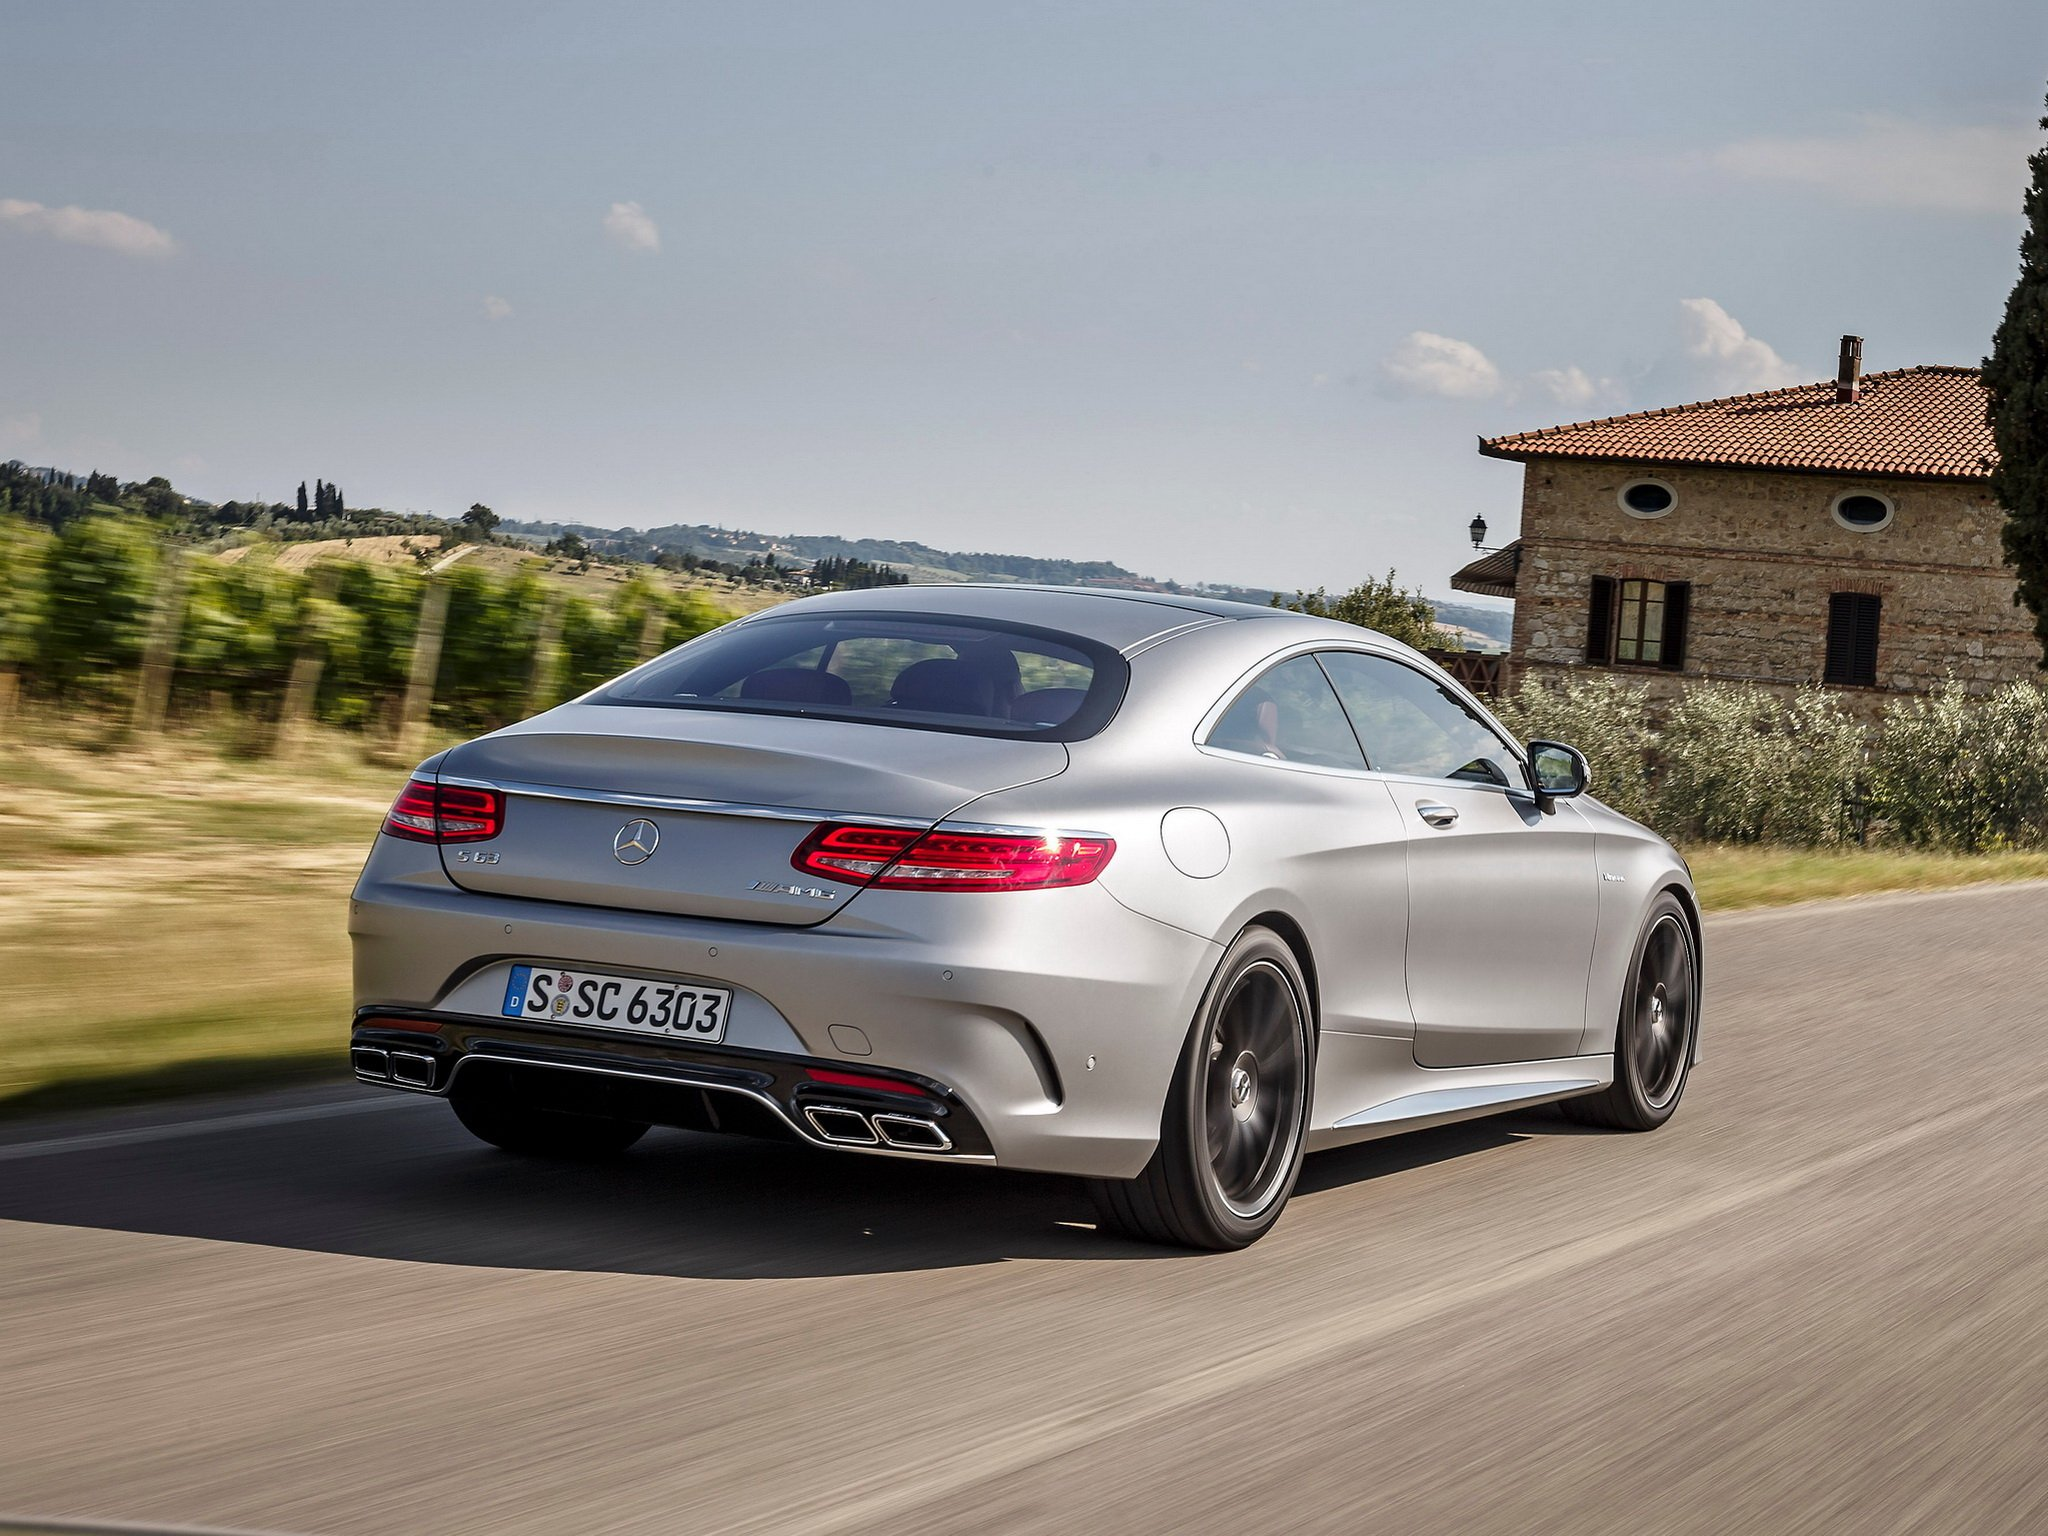 S 63 Amg Wallpaper: 2014 Mercedes Benz S63 AMG Coupe C217 Rw Wallpaper